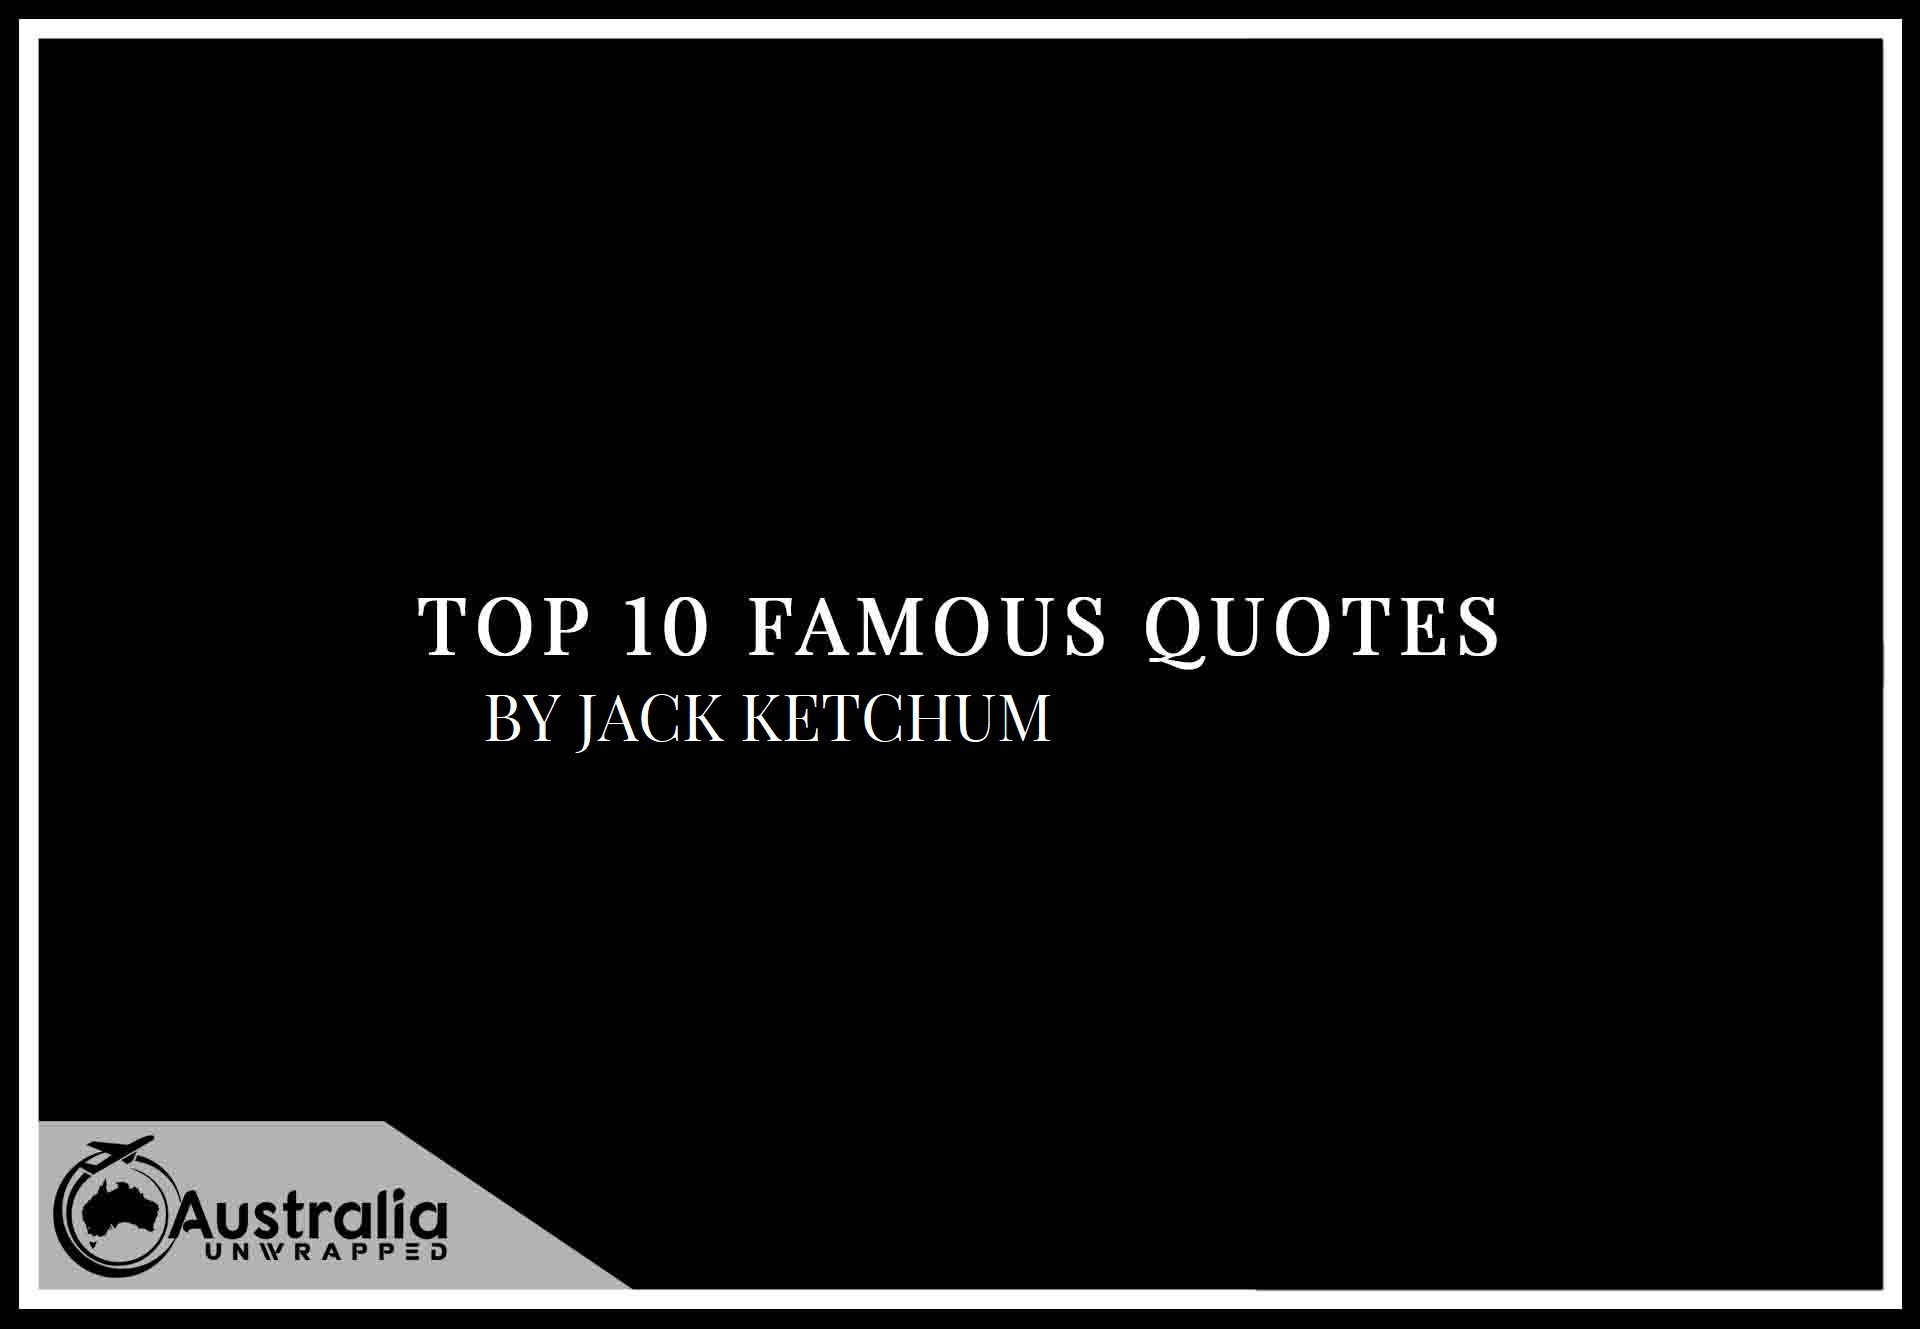 Top 10 Famous Quotes by Author Jack Ketchum